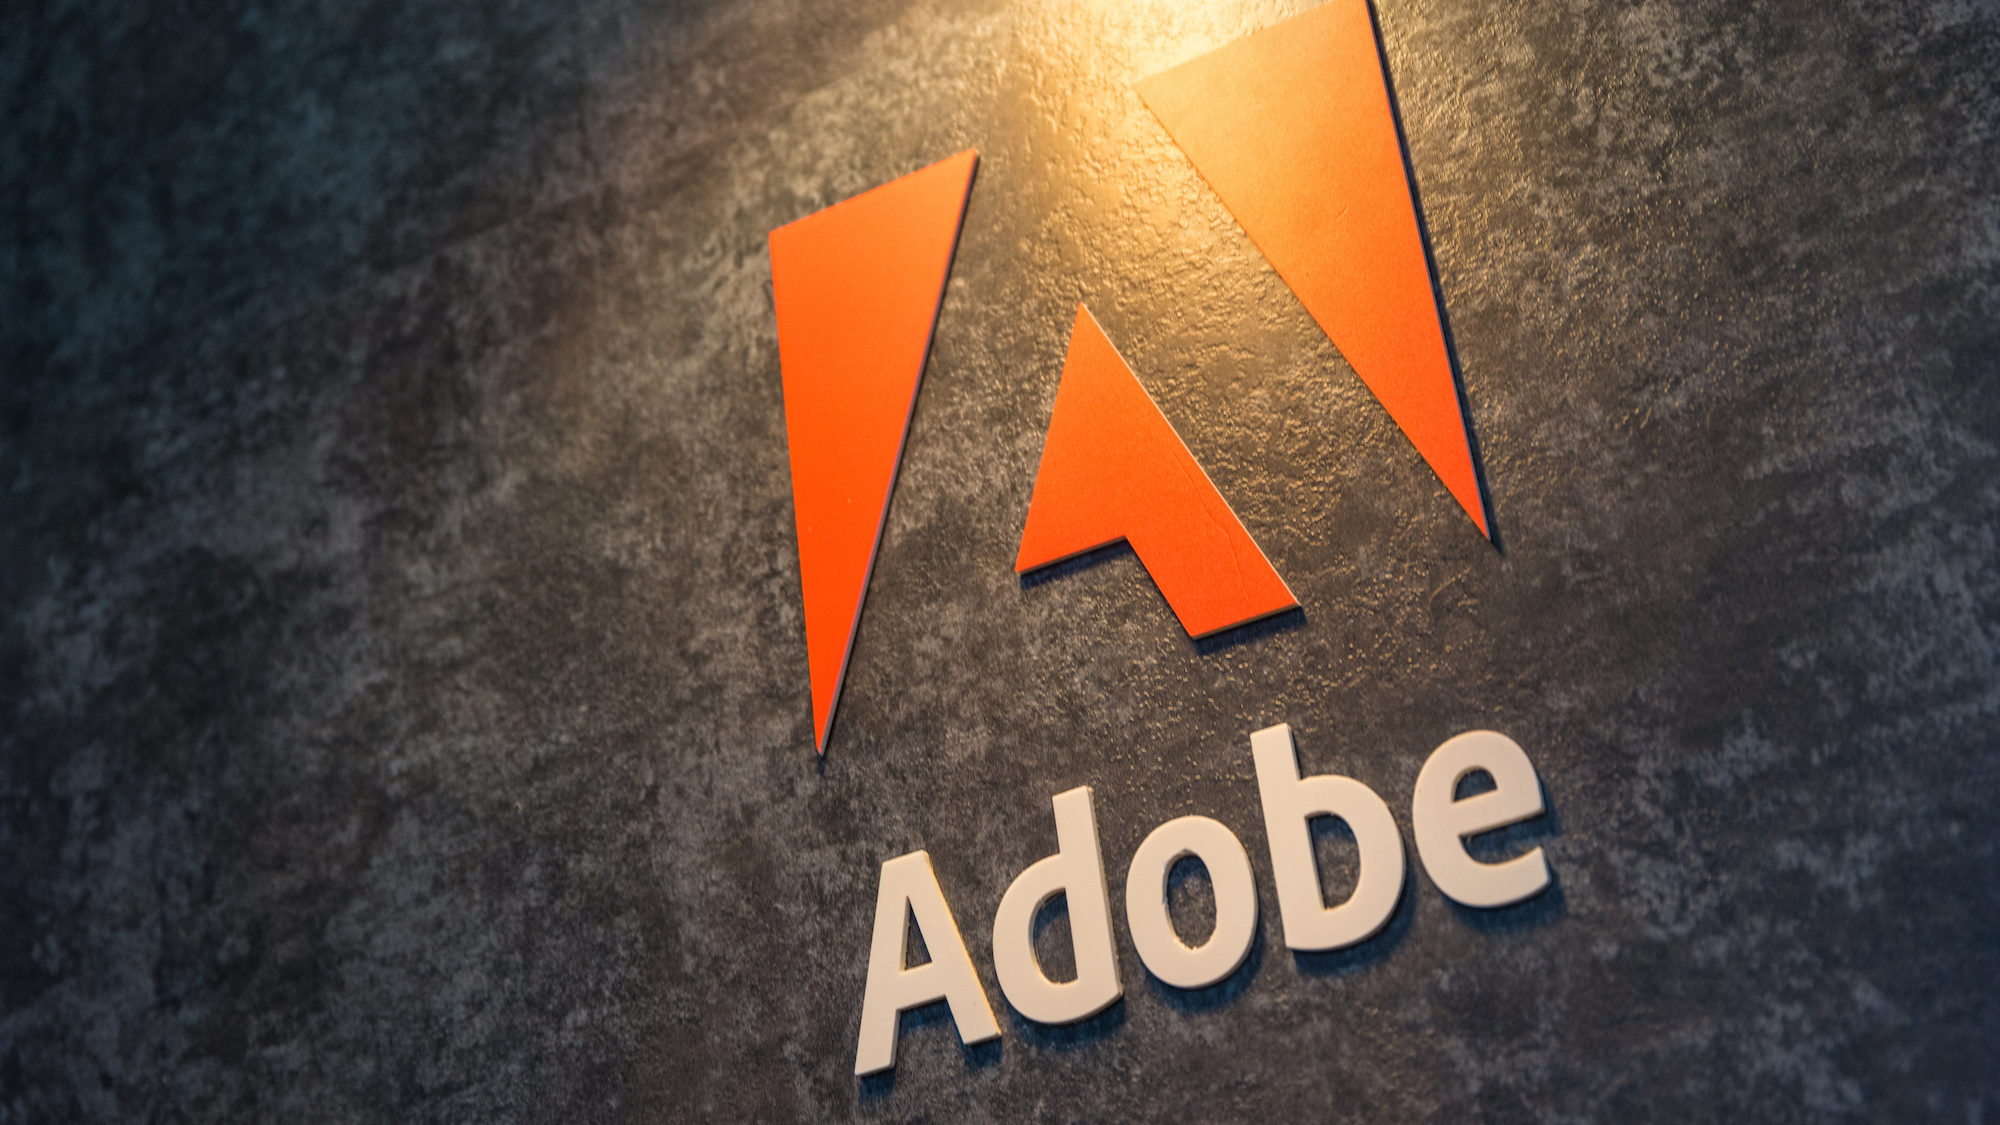 Adobe Tells Users They Can Get Sued for Using Old Versions